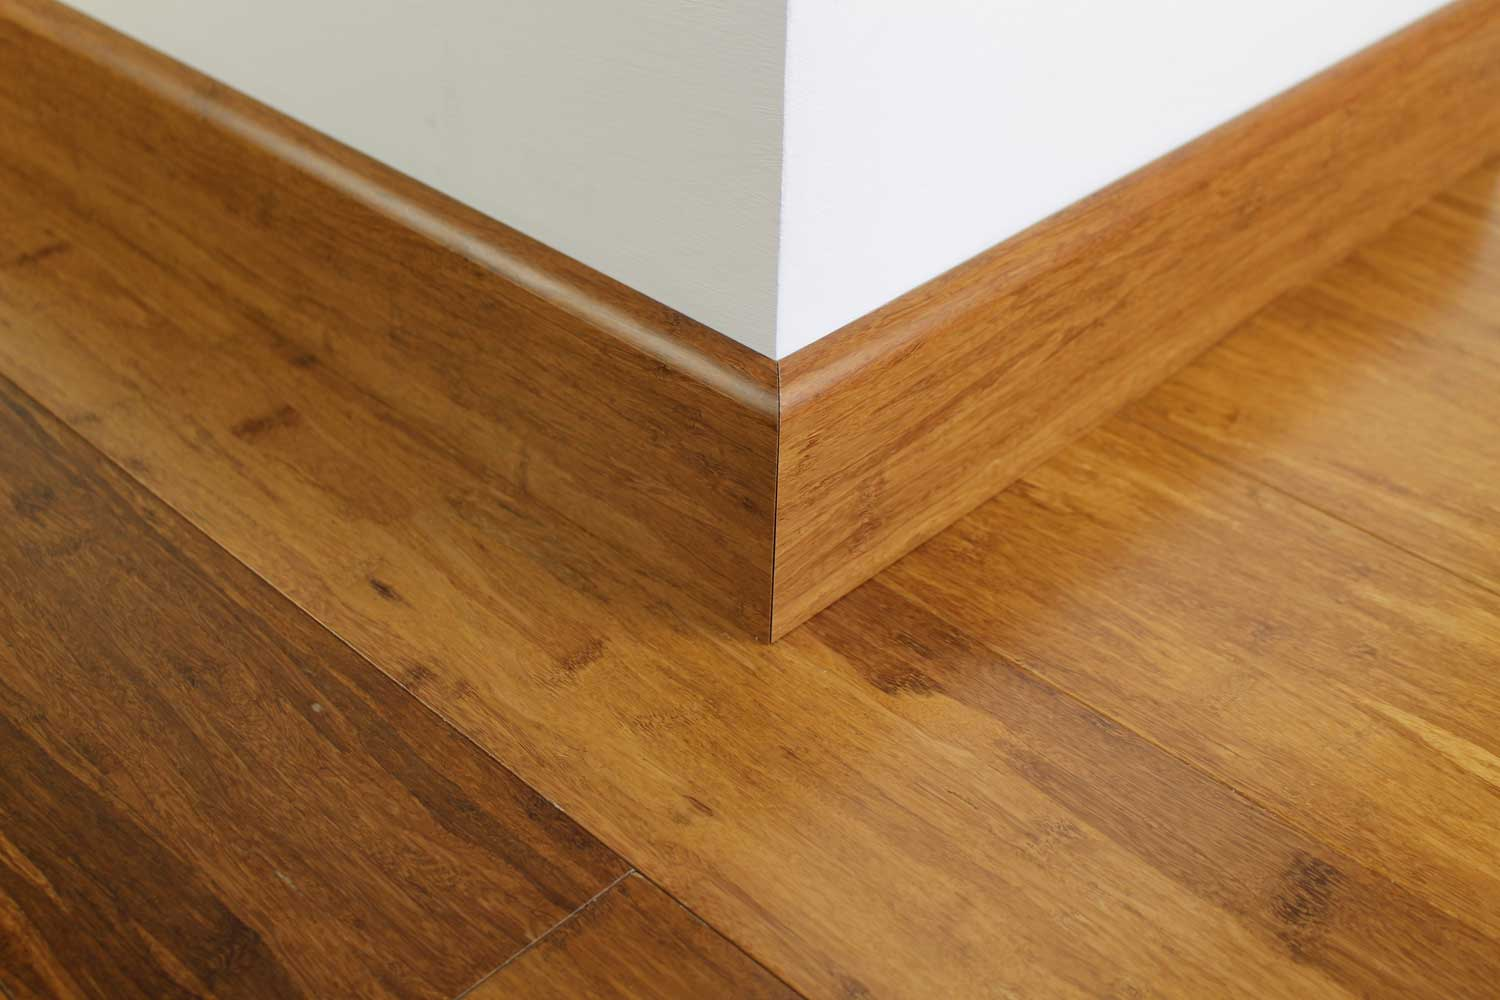 Brushed Carbonised Strand Woven Bamboo 92mm Skirting 1850mm